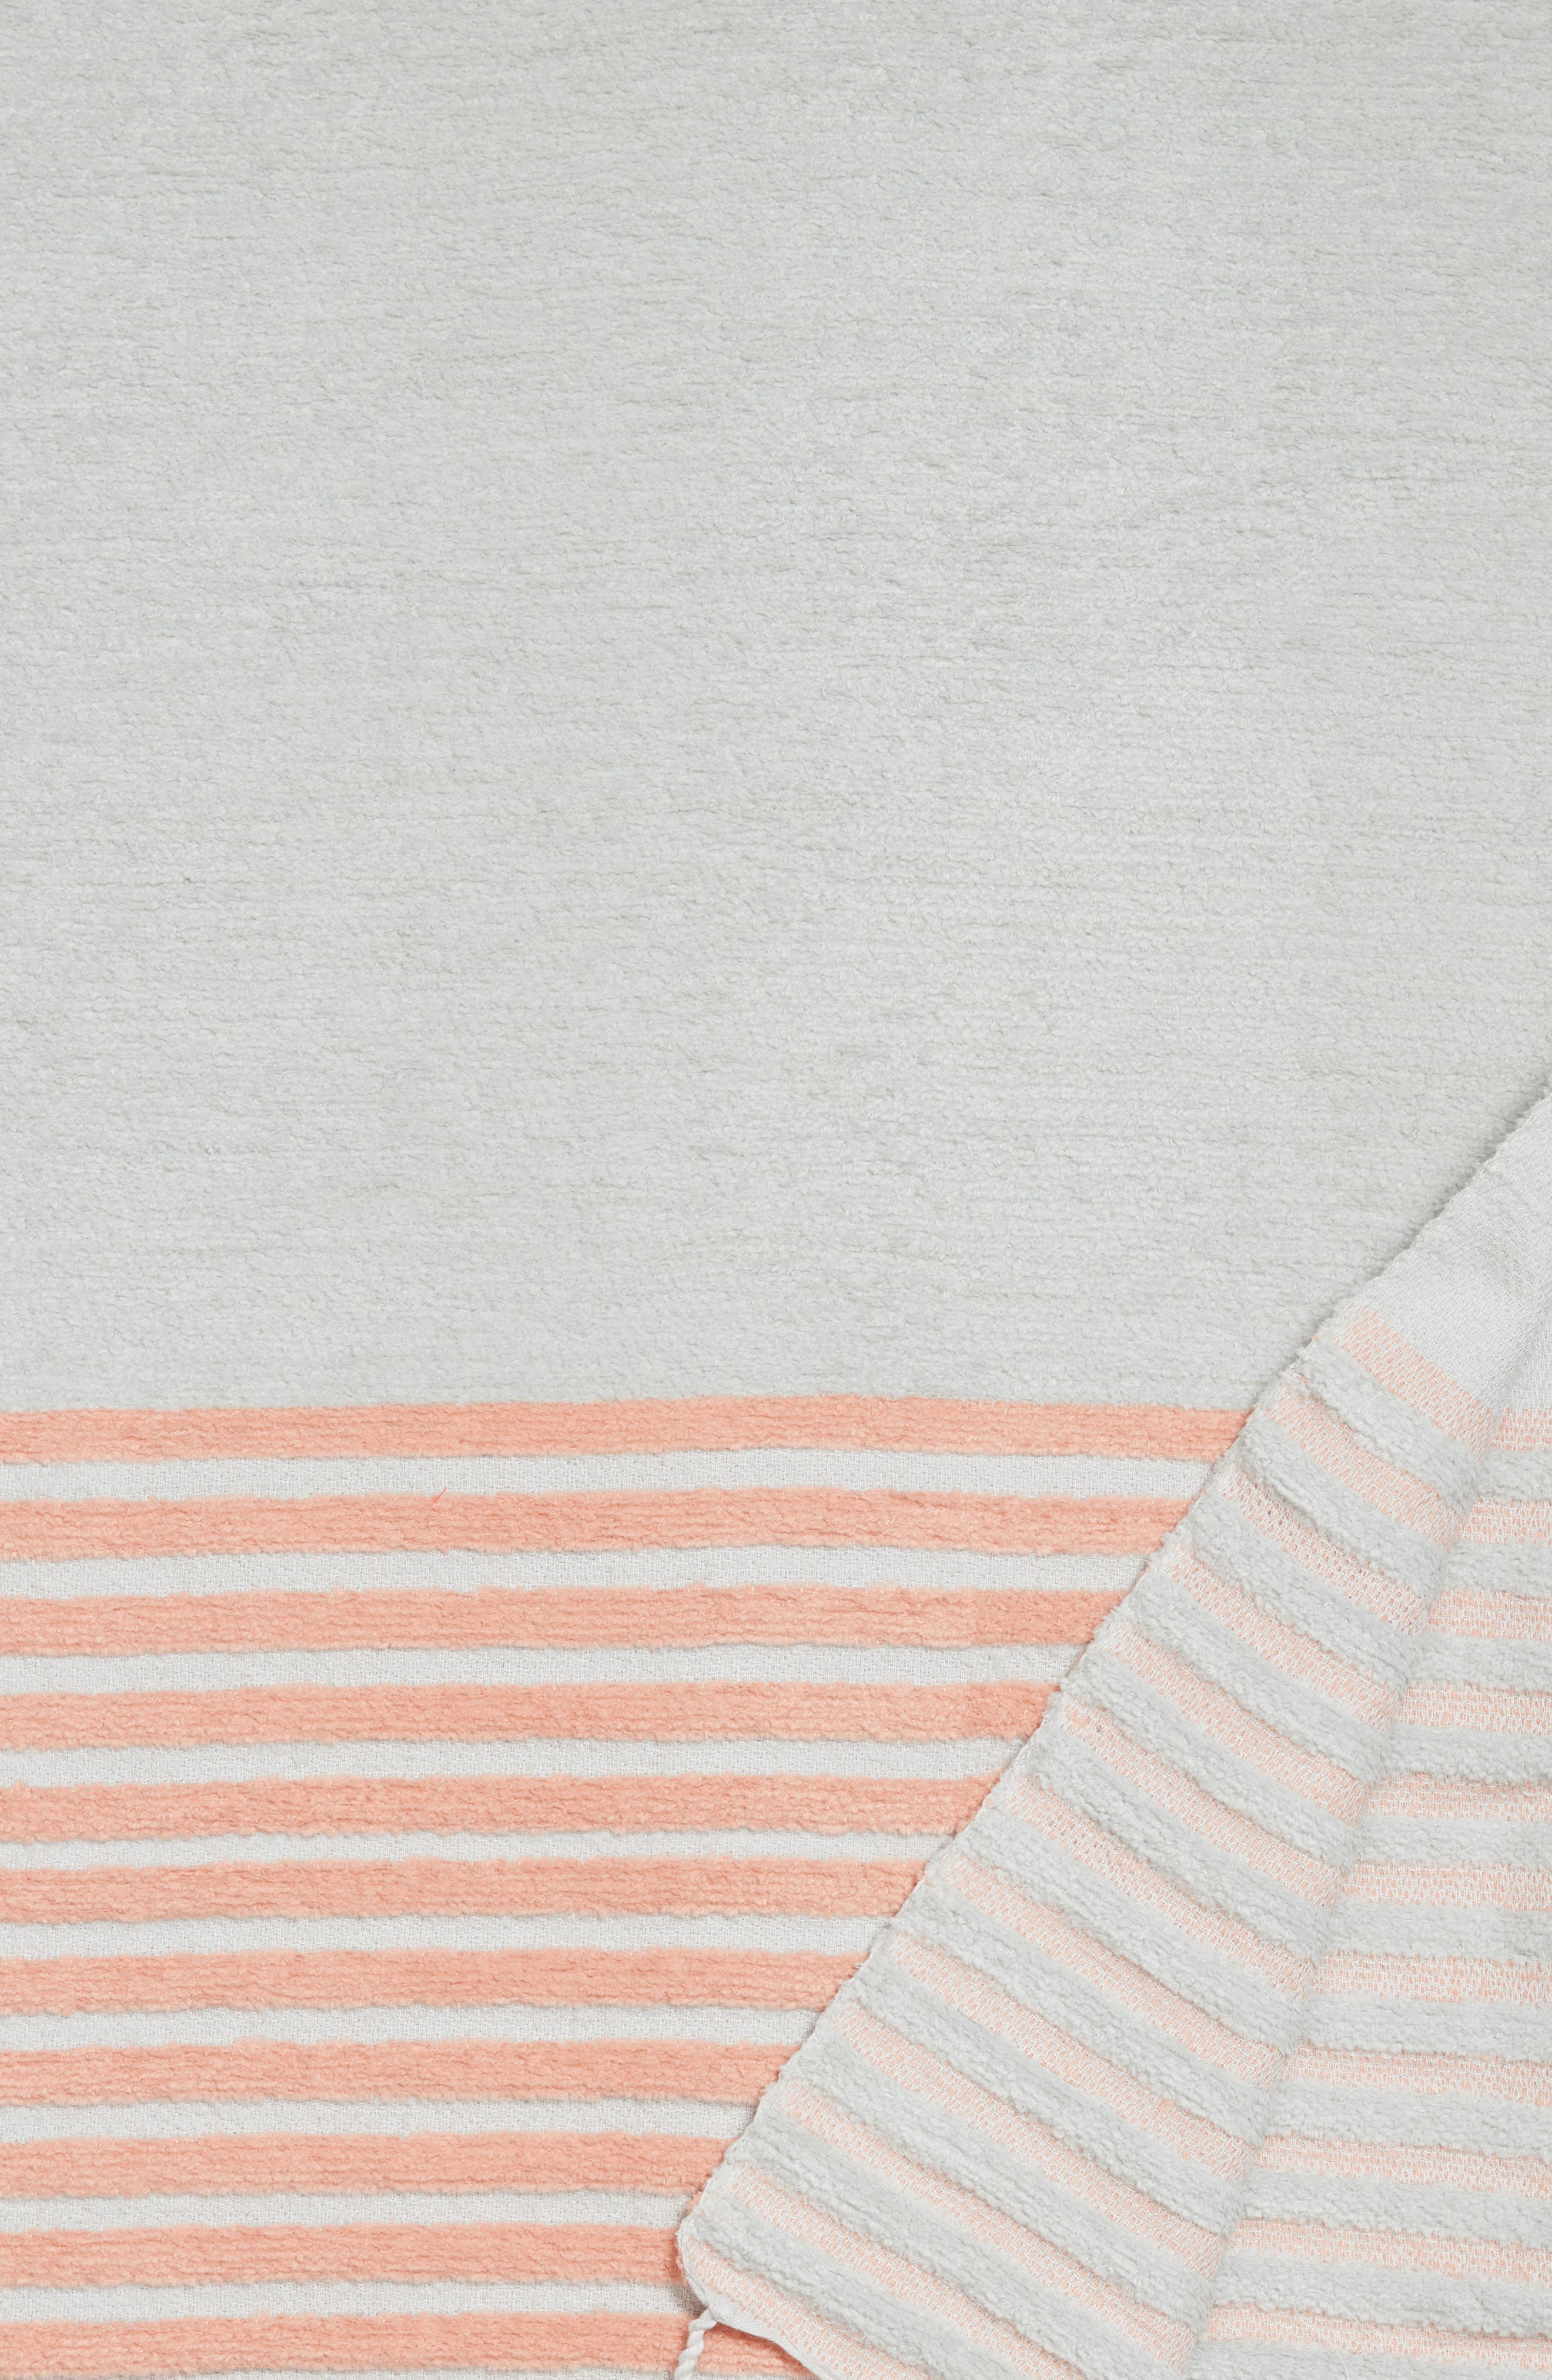 Hammam Stripe Throw,                             Alternate thumbnail 2, color,                             020